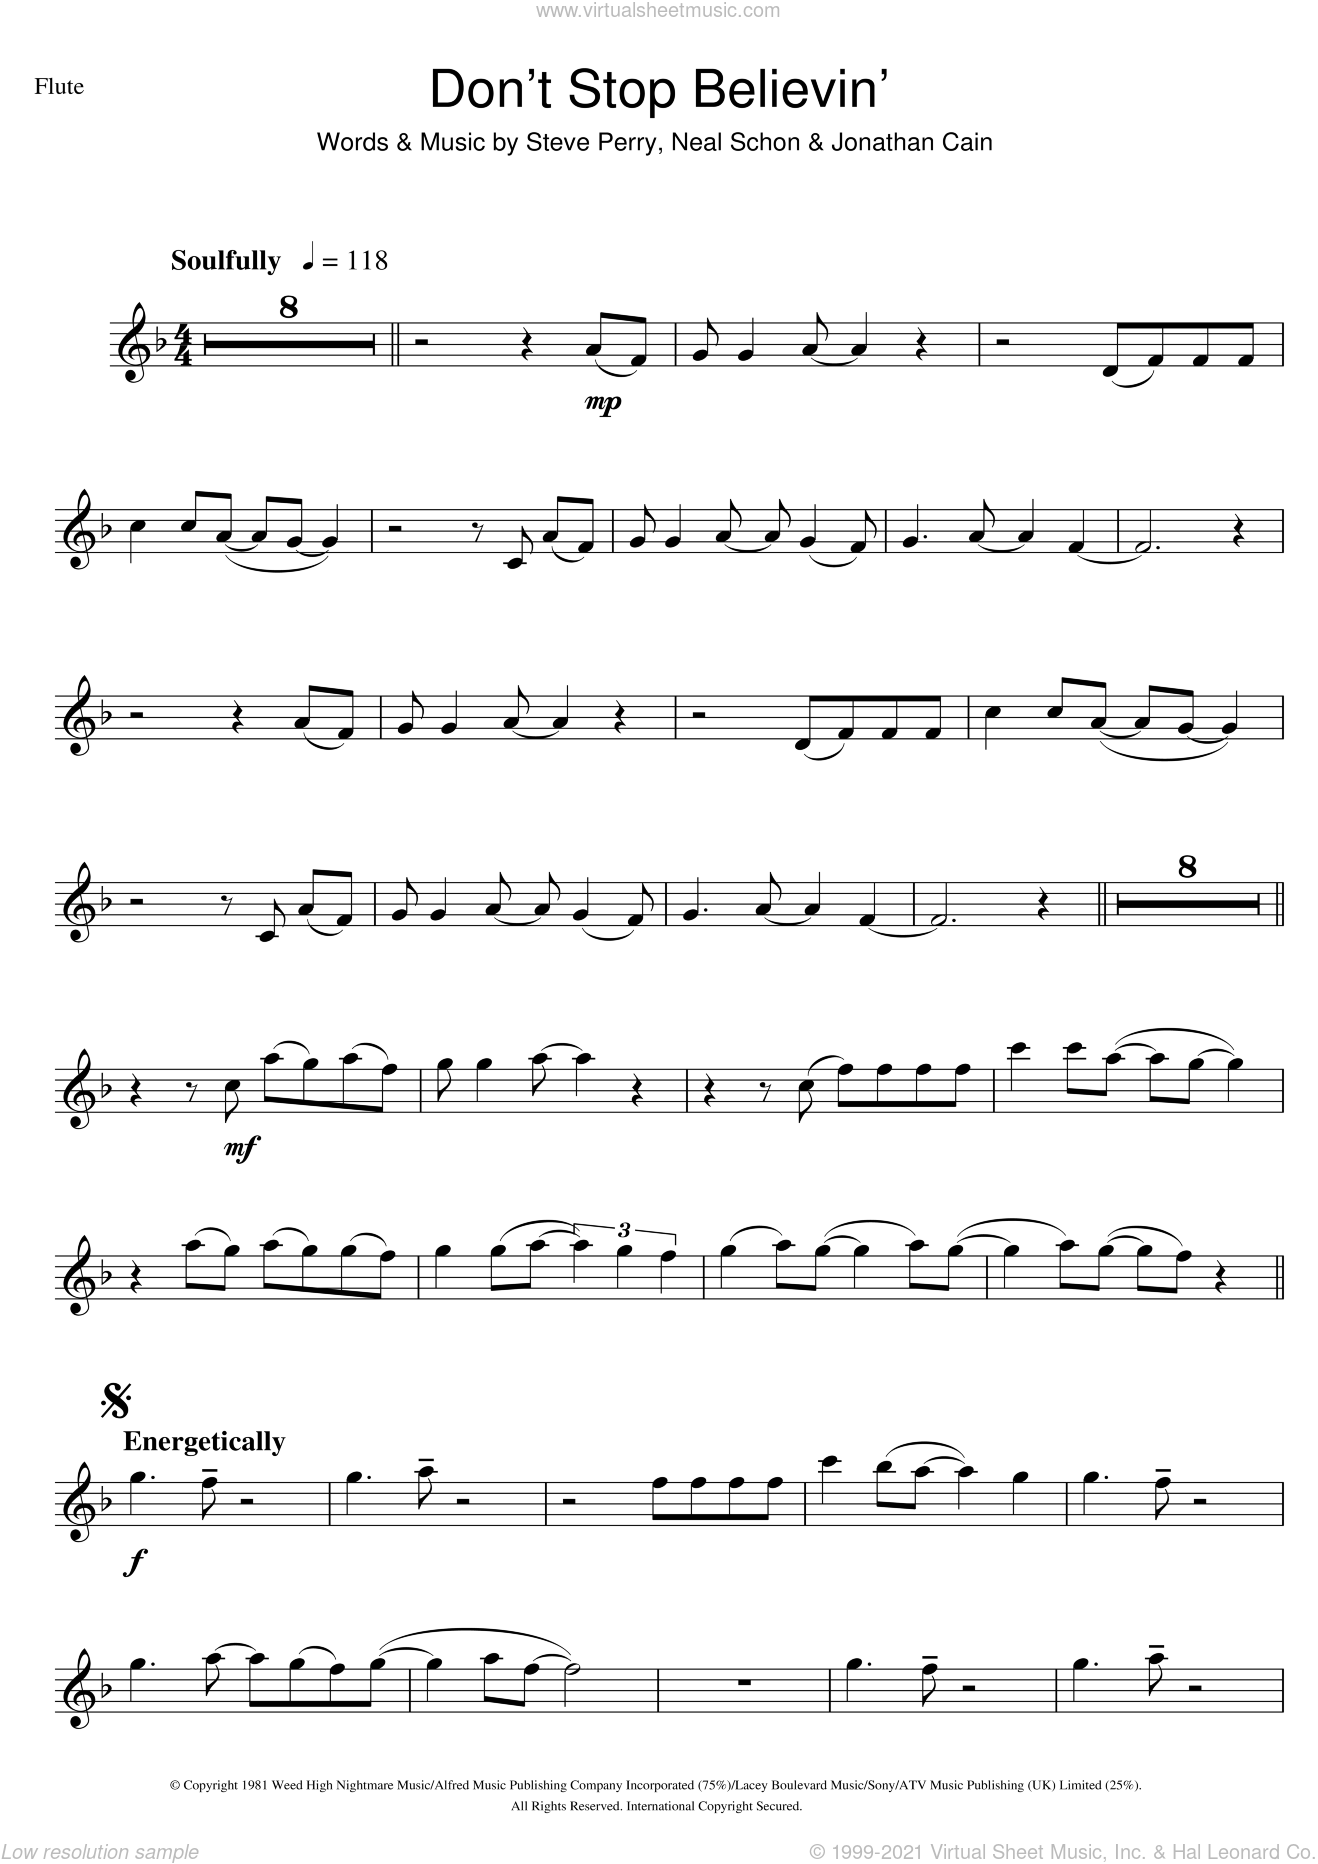 Don't Stop Believin' sheet music for flute solo by Journey, Glee Cast, Jonathan Cain, Neal Schon and Steve Perry, intermediate skill level